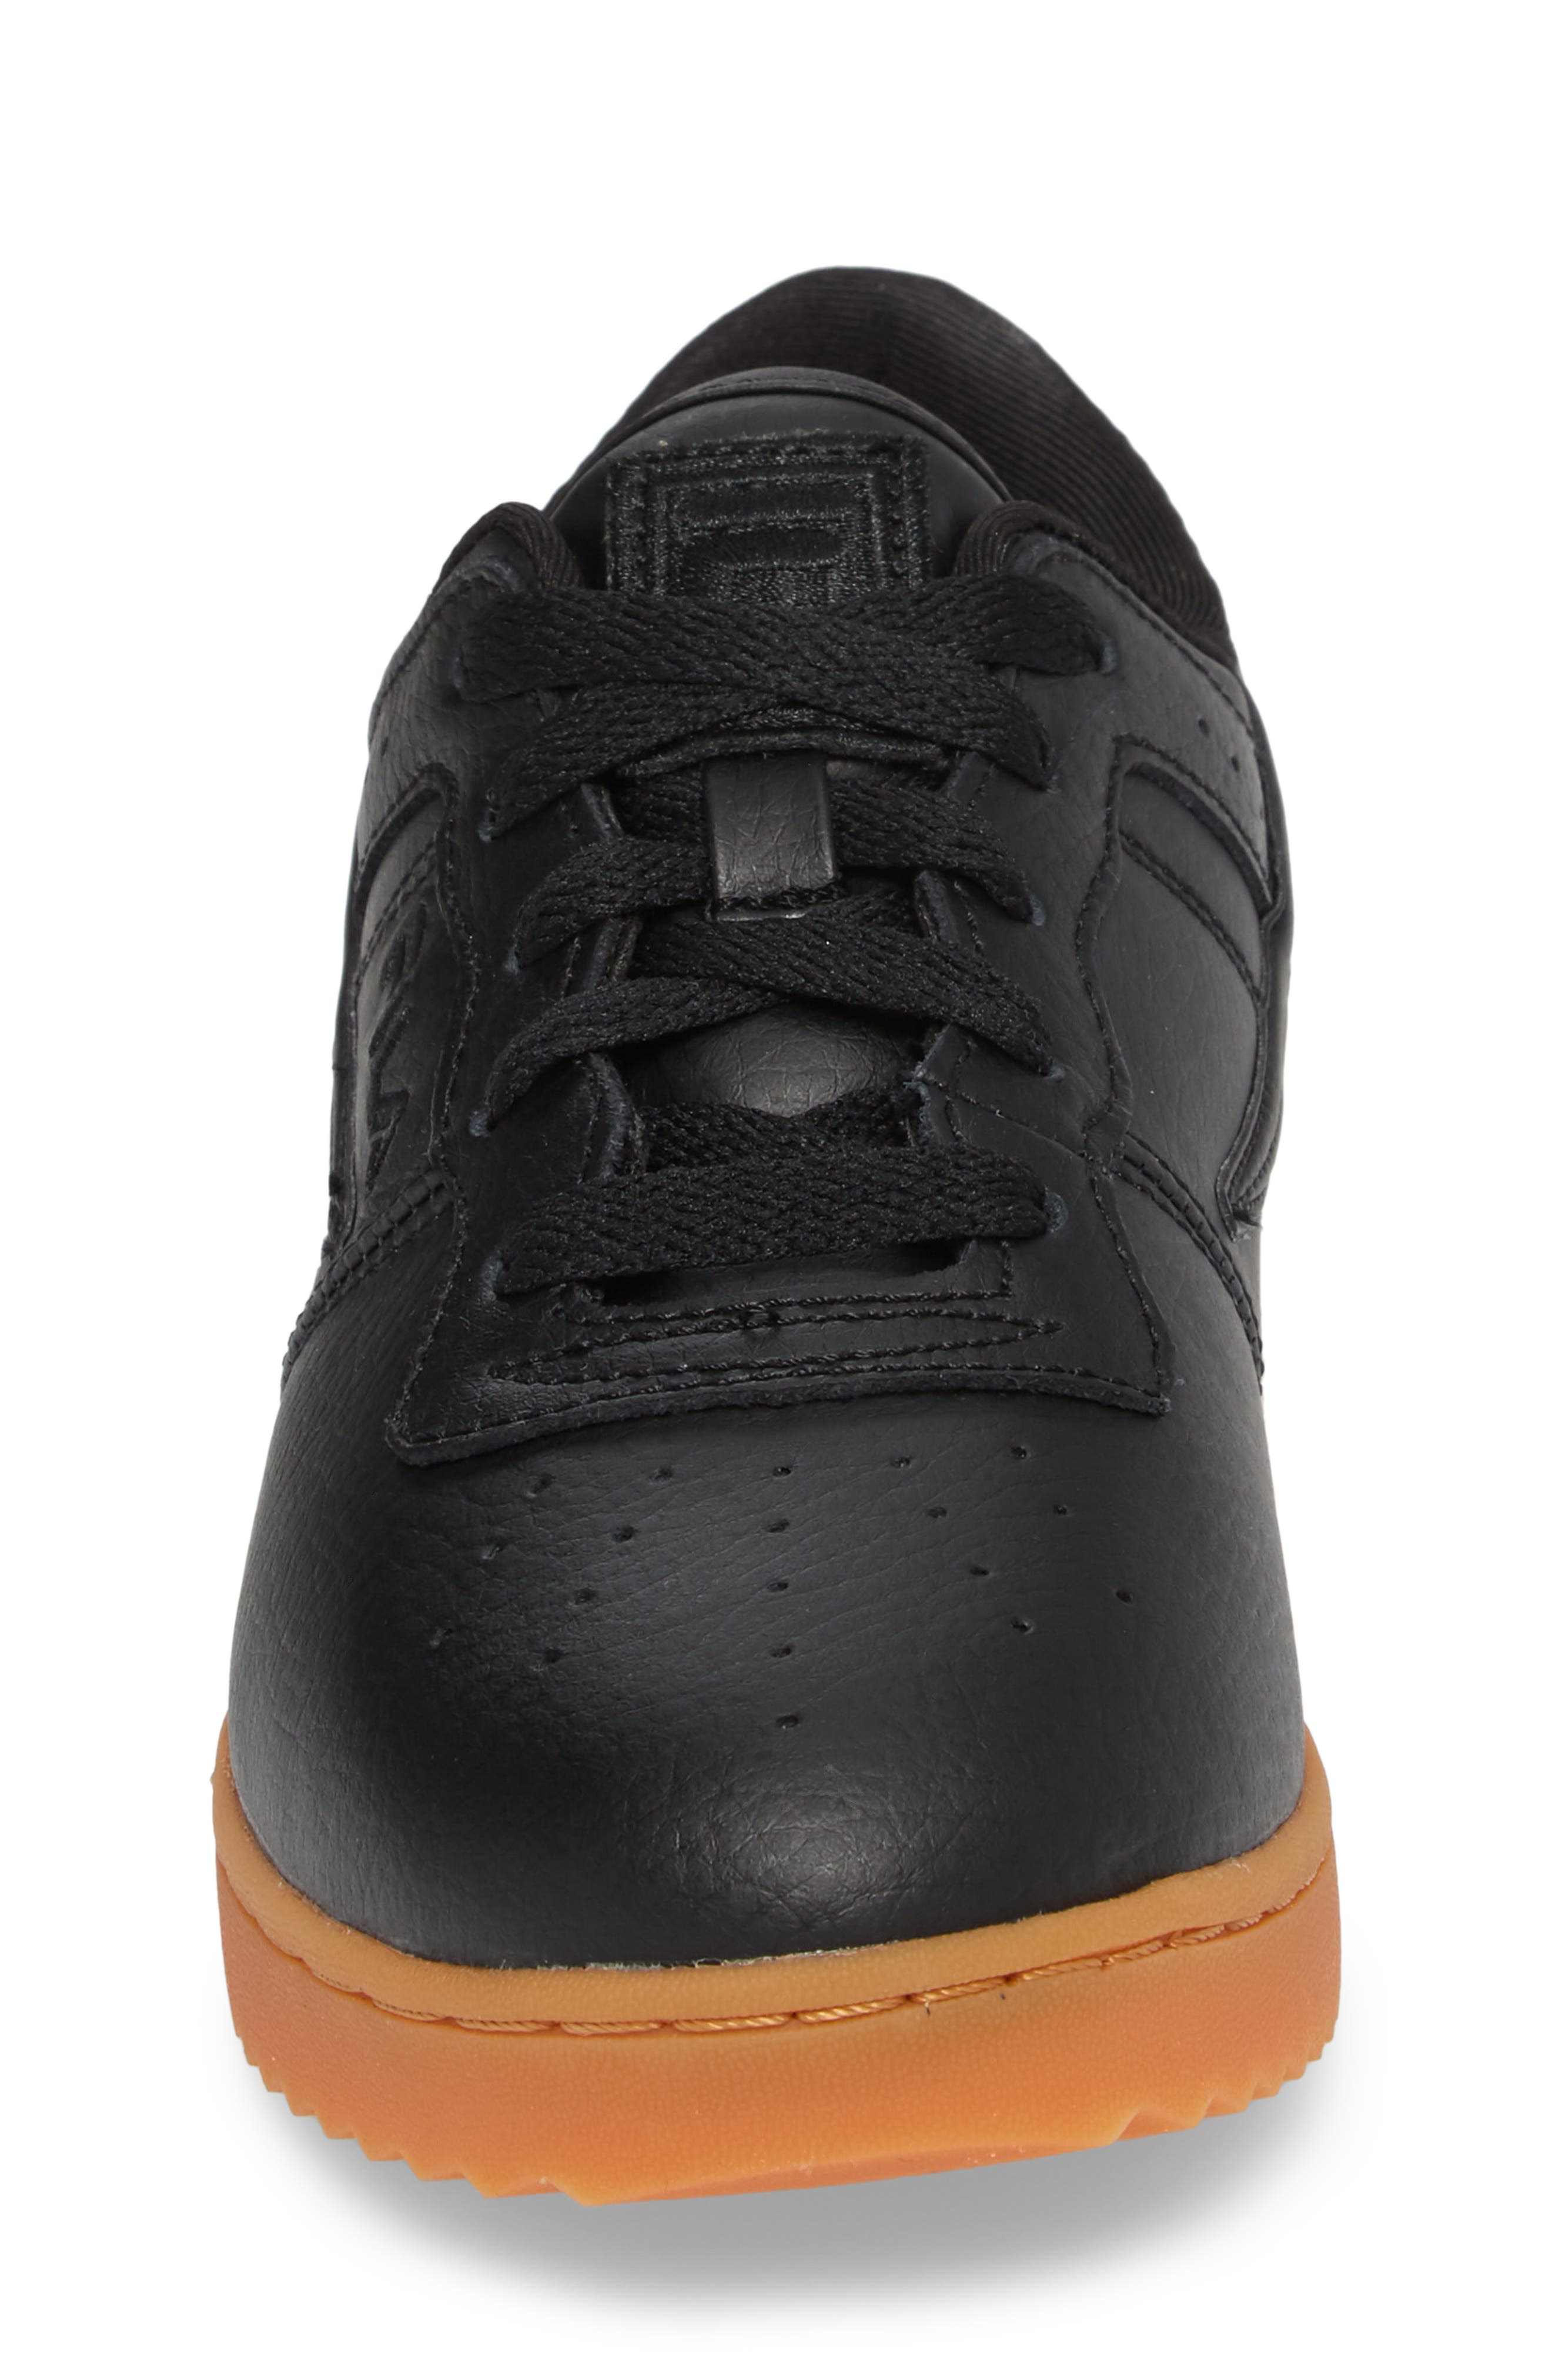 Original Fitness Sneaker,                             Alternate thumbnail 4, color,                             Black/ Gum